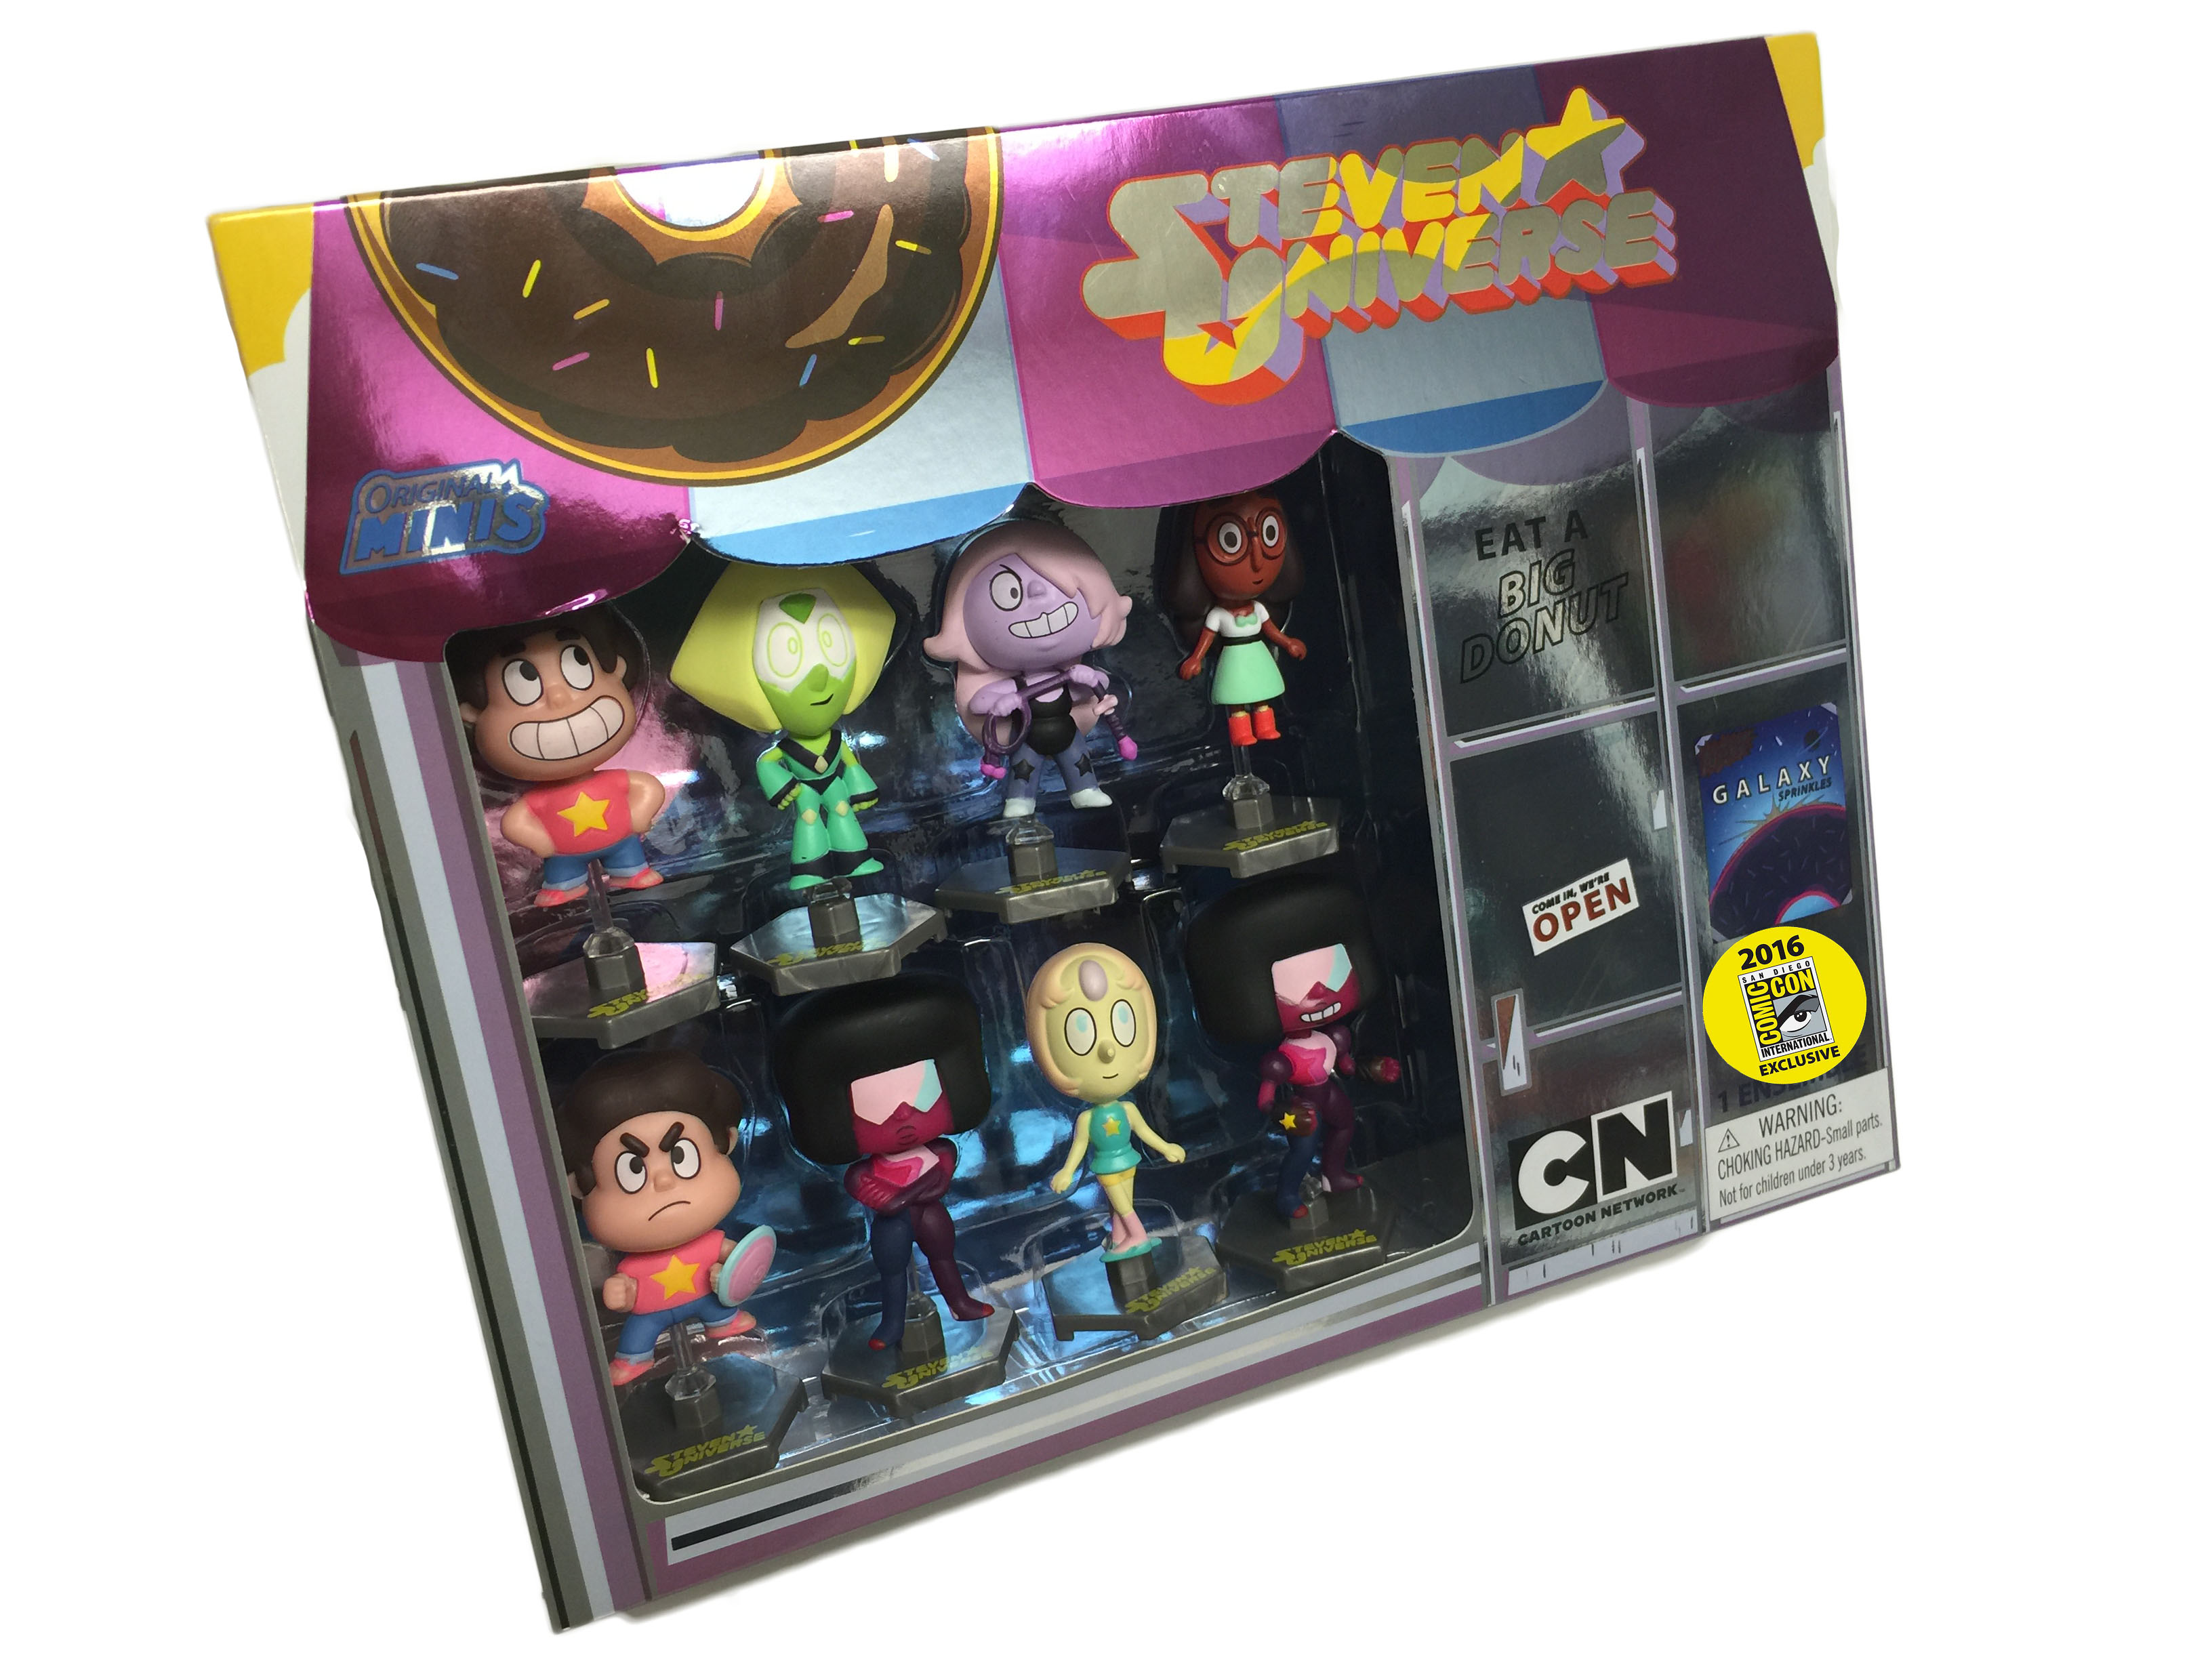 Steven Universe 8 piece figure set